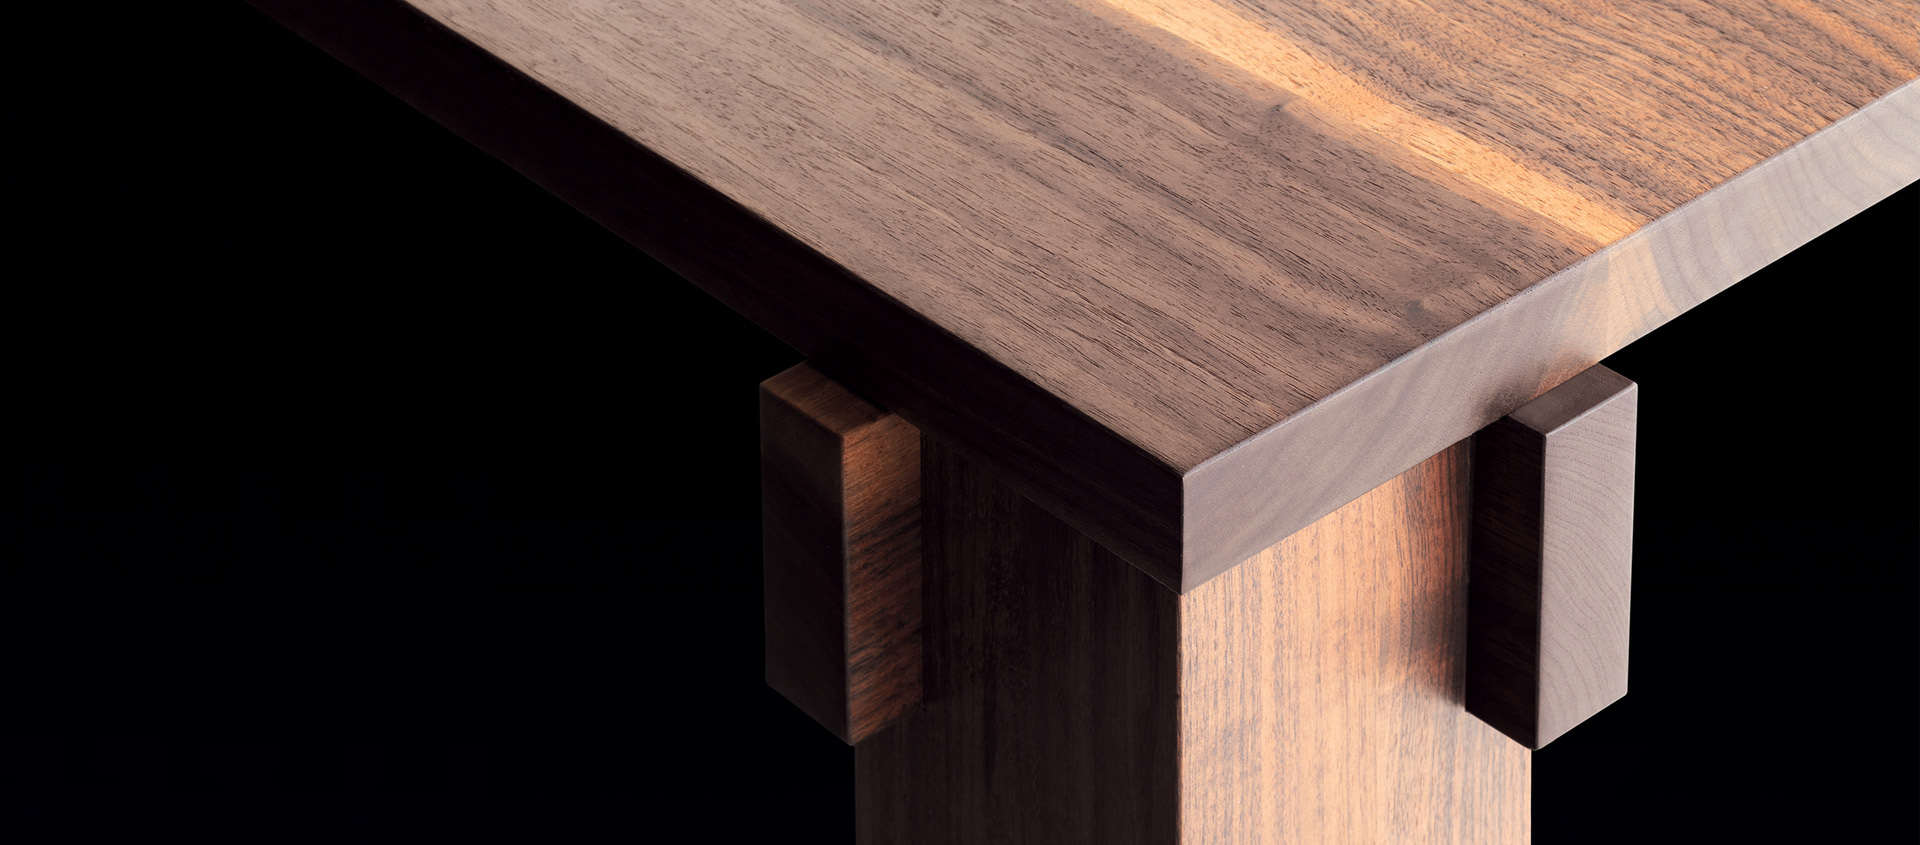 Image: Solid wood